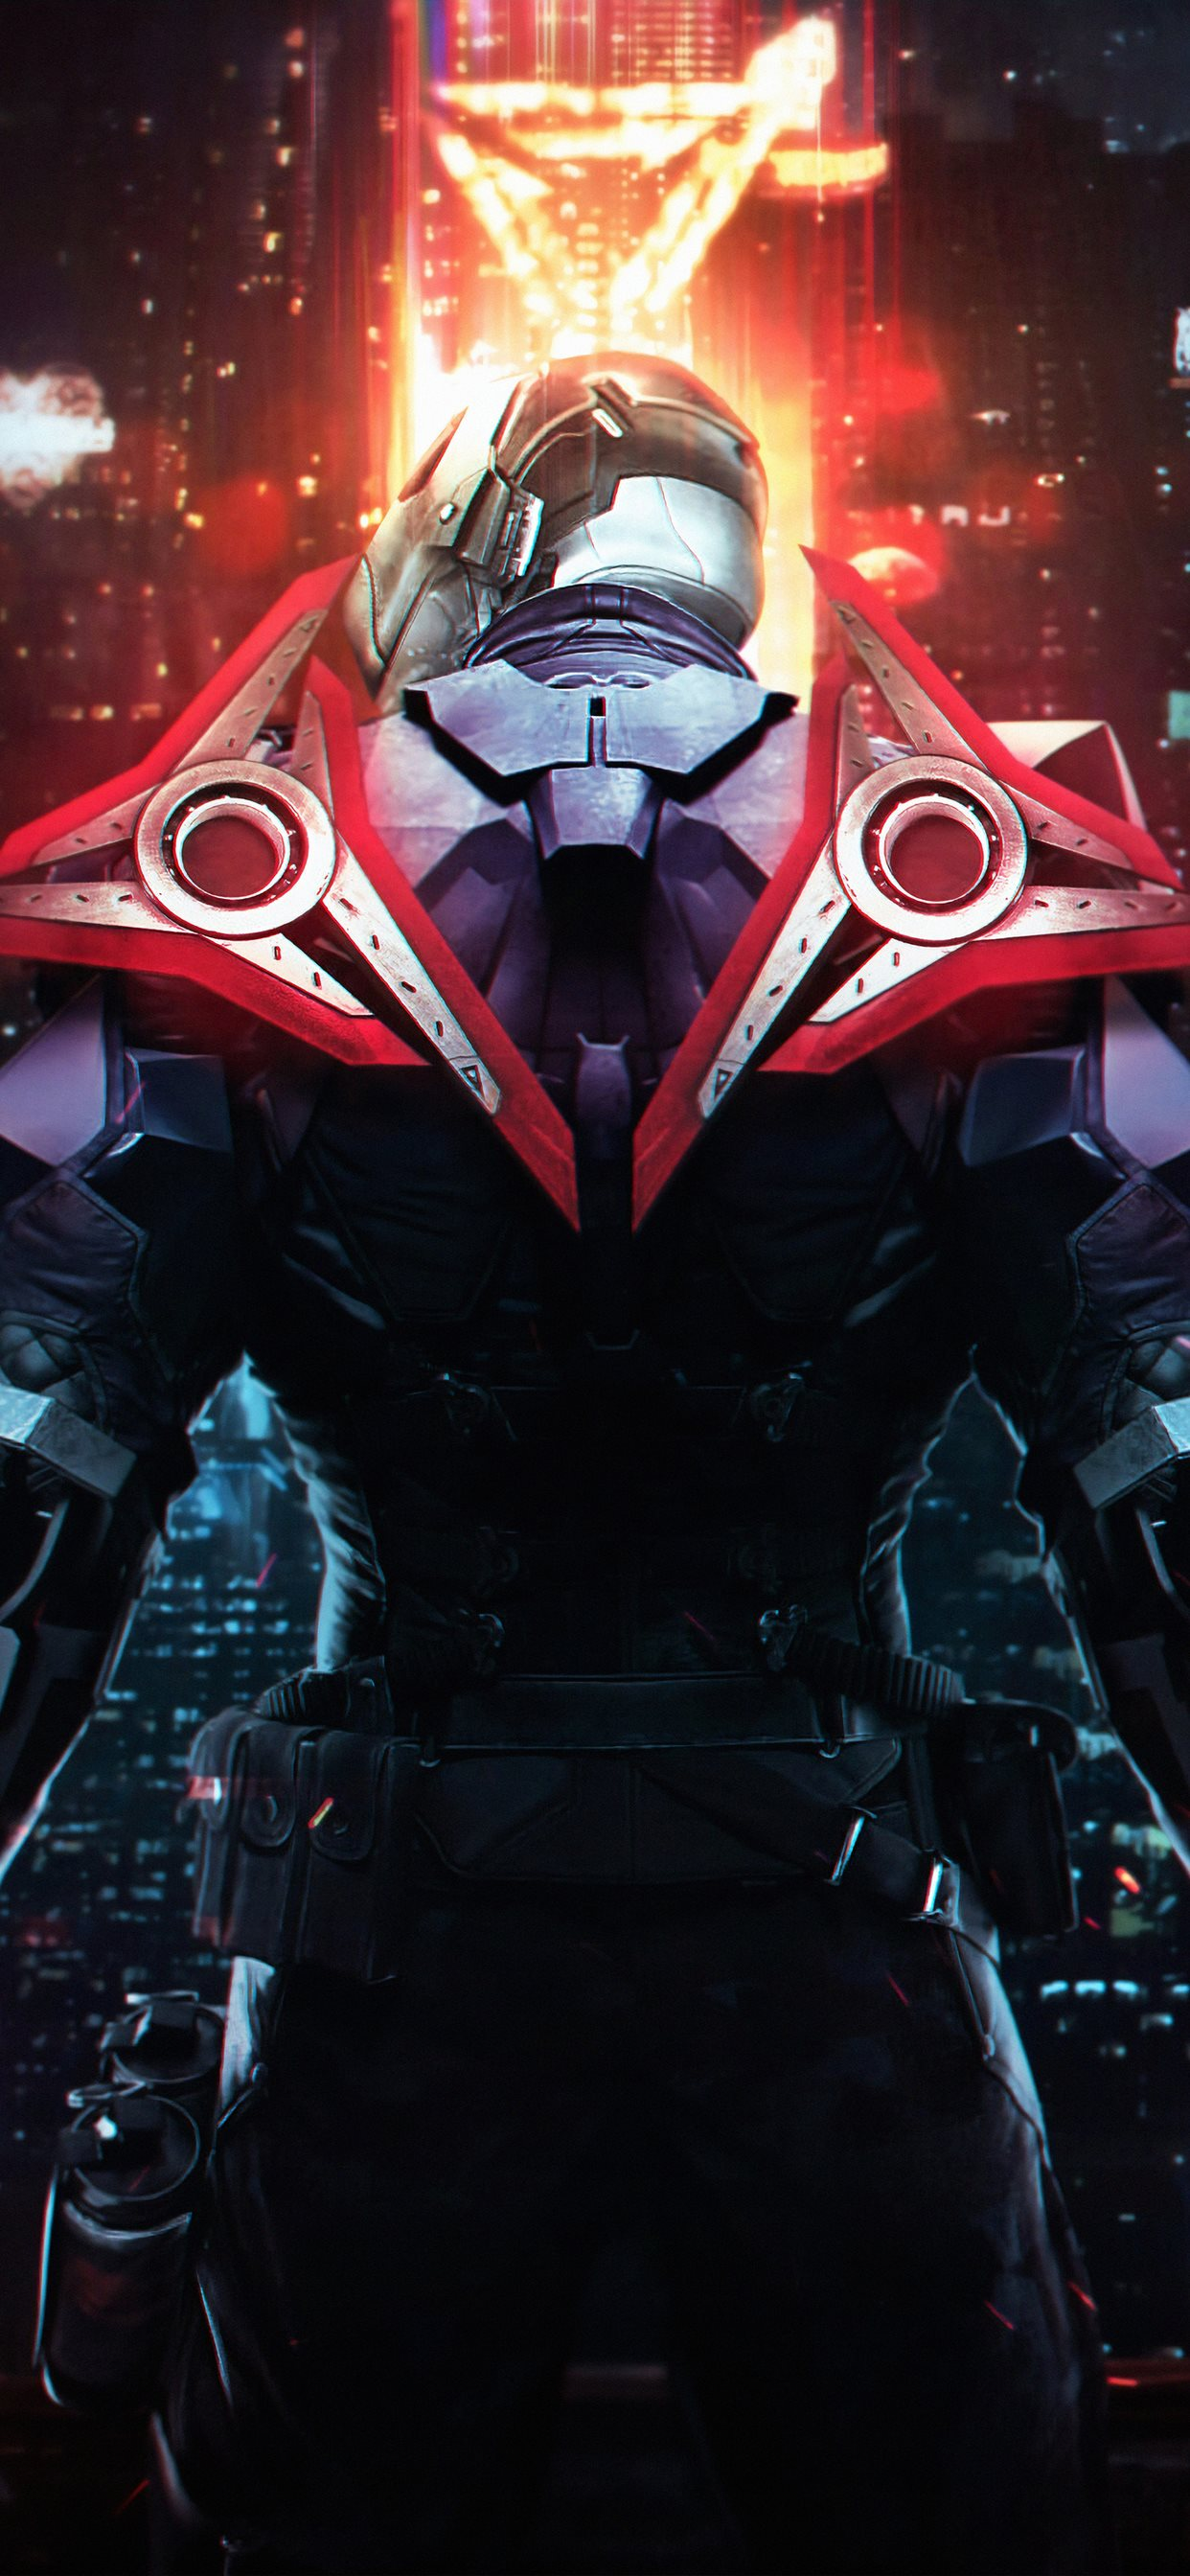 League Of Legends Project Zed 4k Iphone Wallpapers Free Download